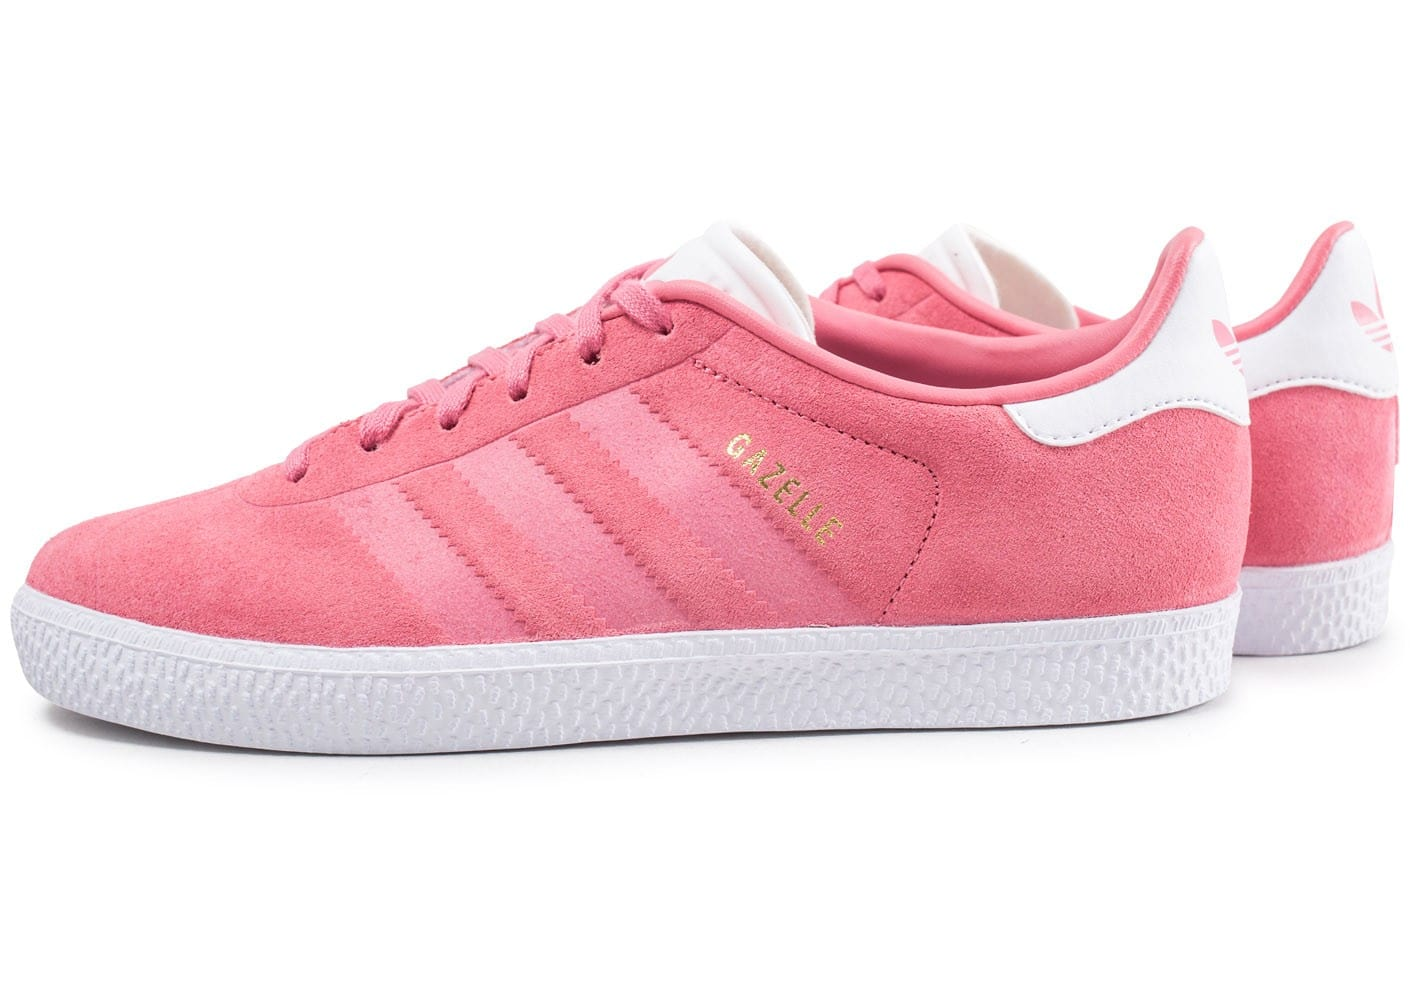 check-out 54578 d1490 adidas Gazelle junior rose - Chaussures adidas - Chausport